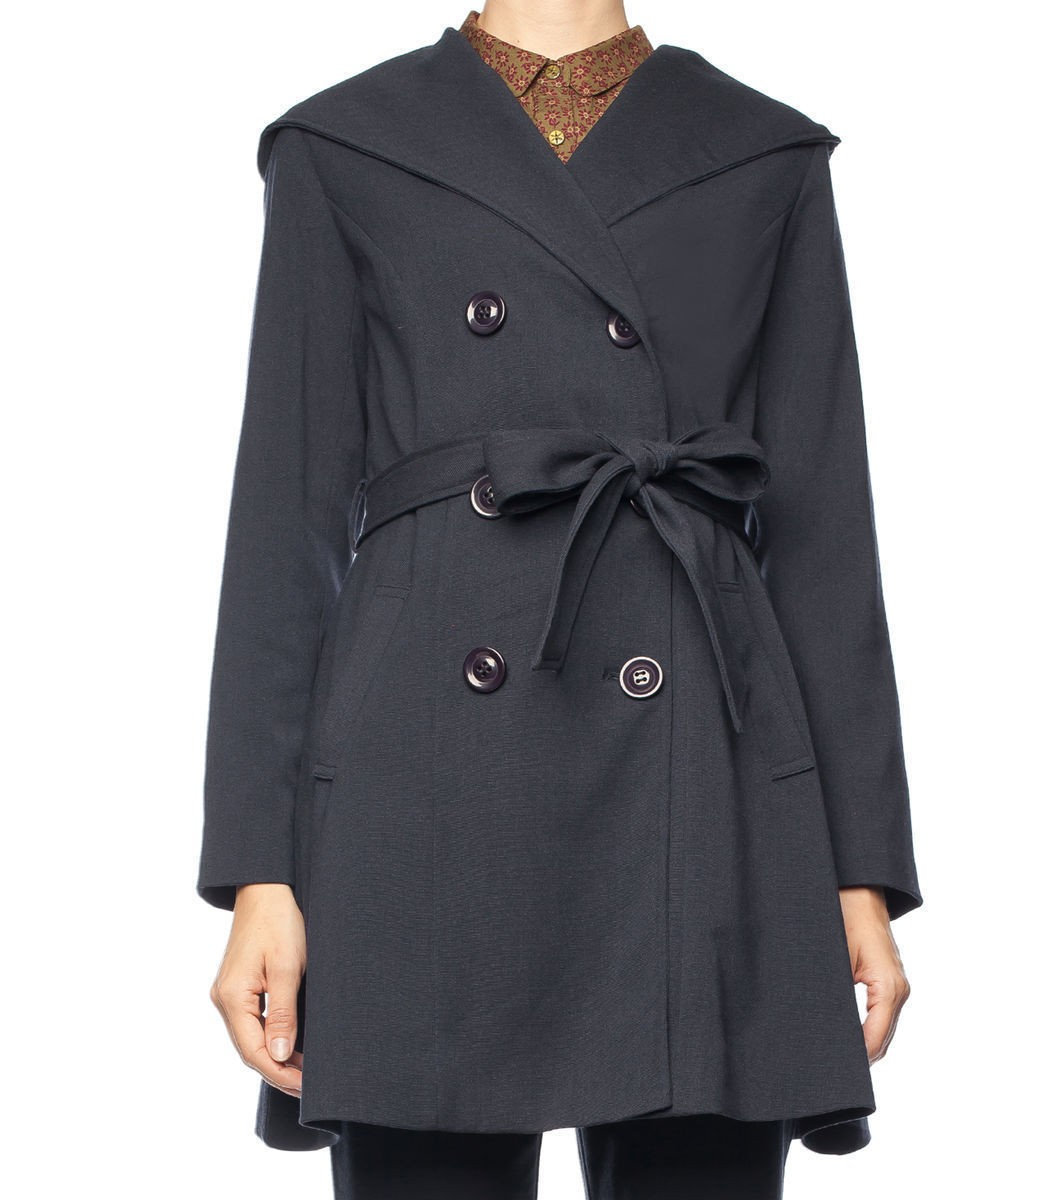 Ticket To Ride Jacket